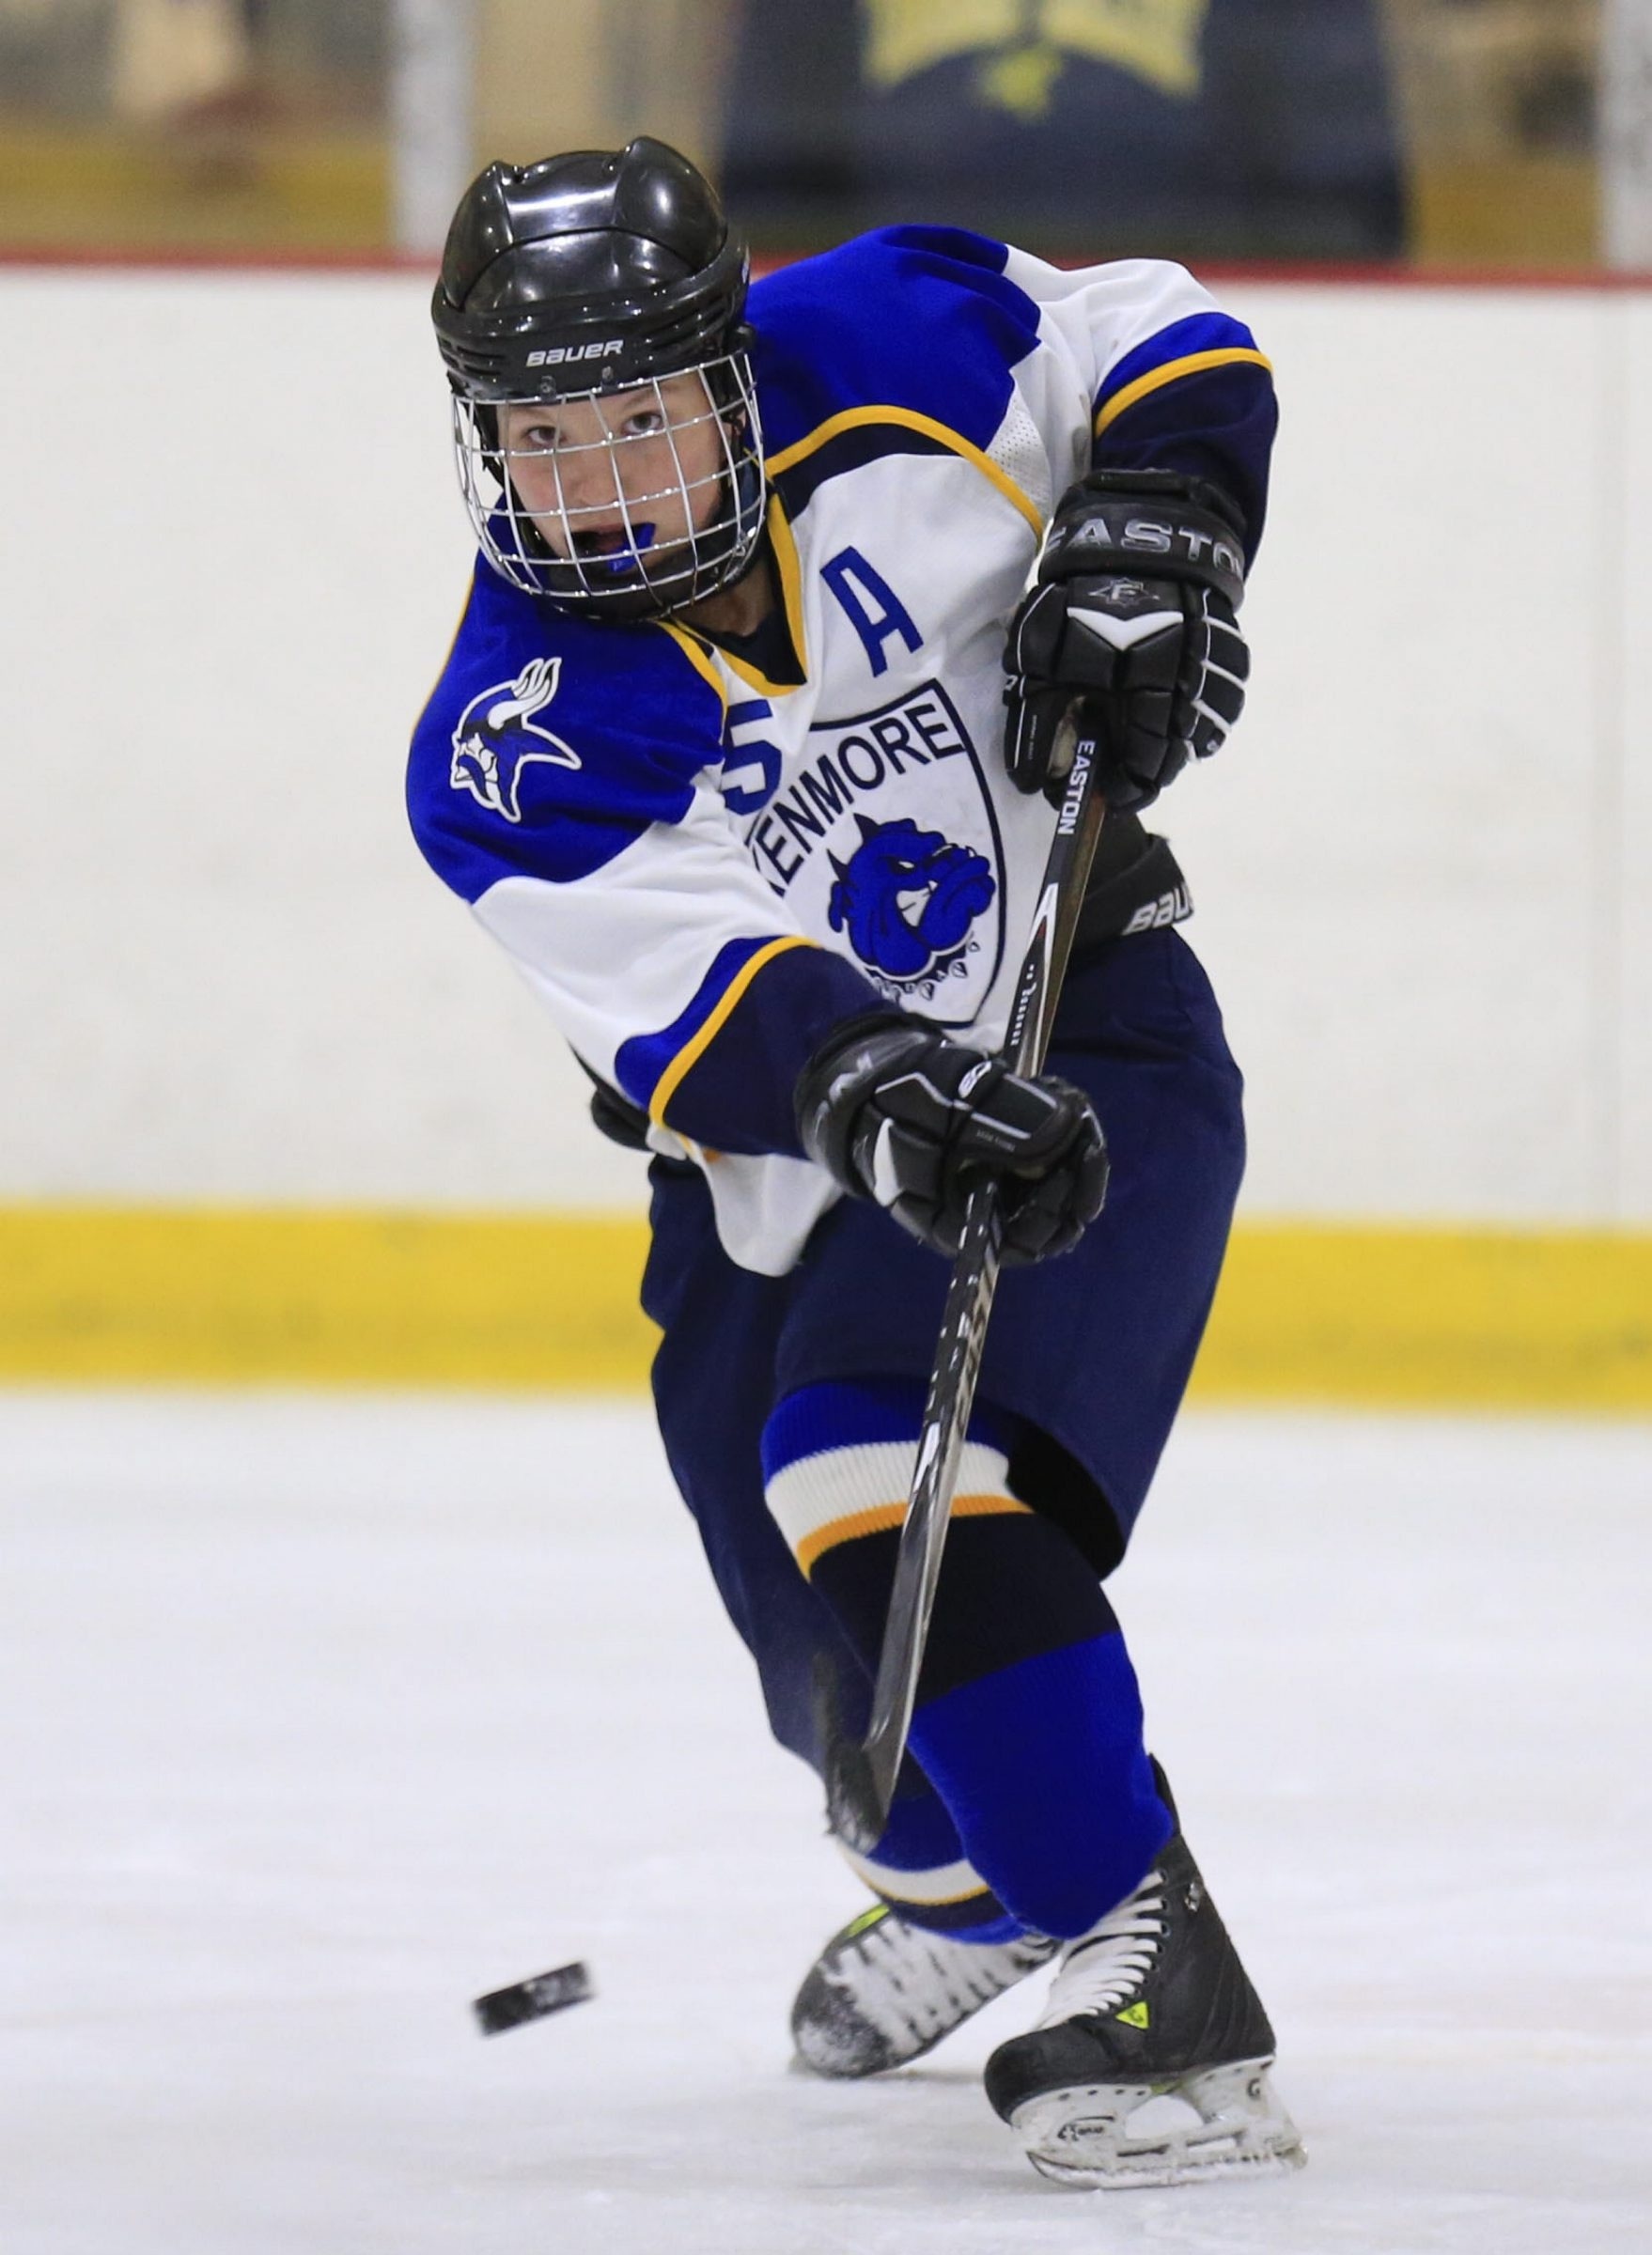 Grace Simmons of Kenmore/Grand Island is in her sixth season of WNY Girls Hockey.